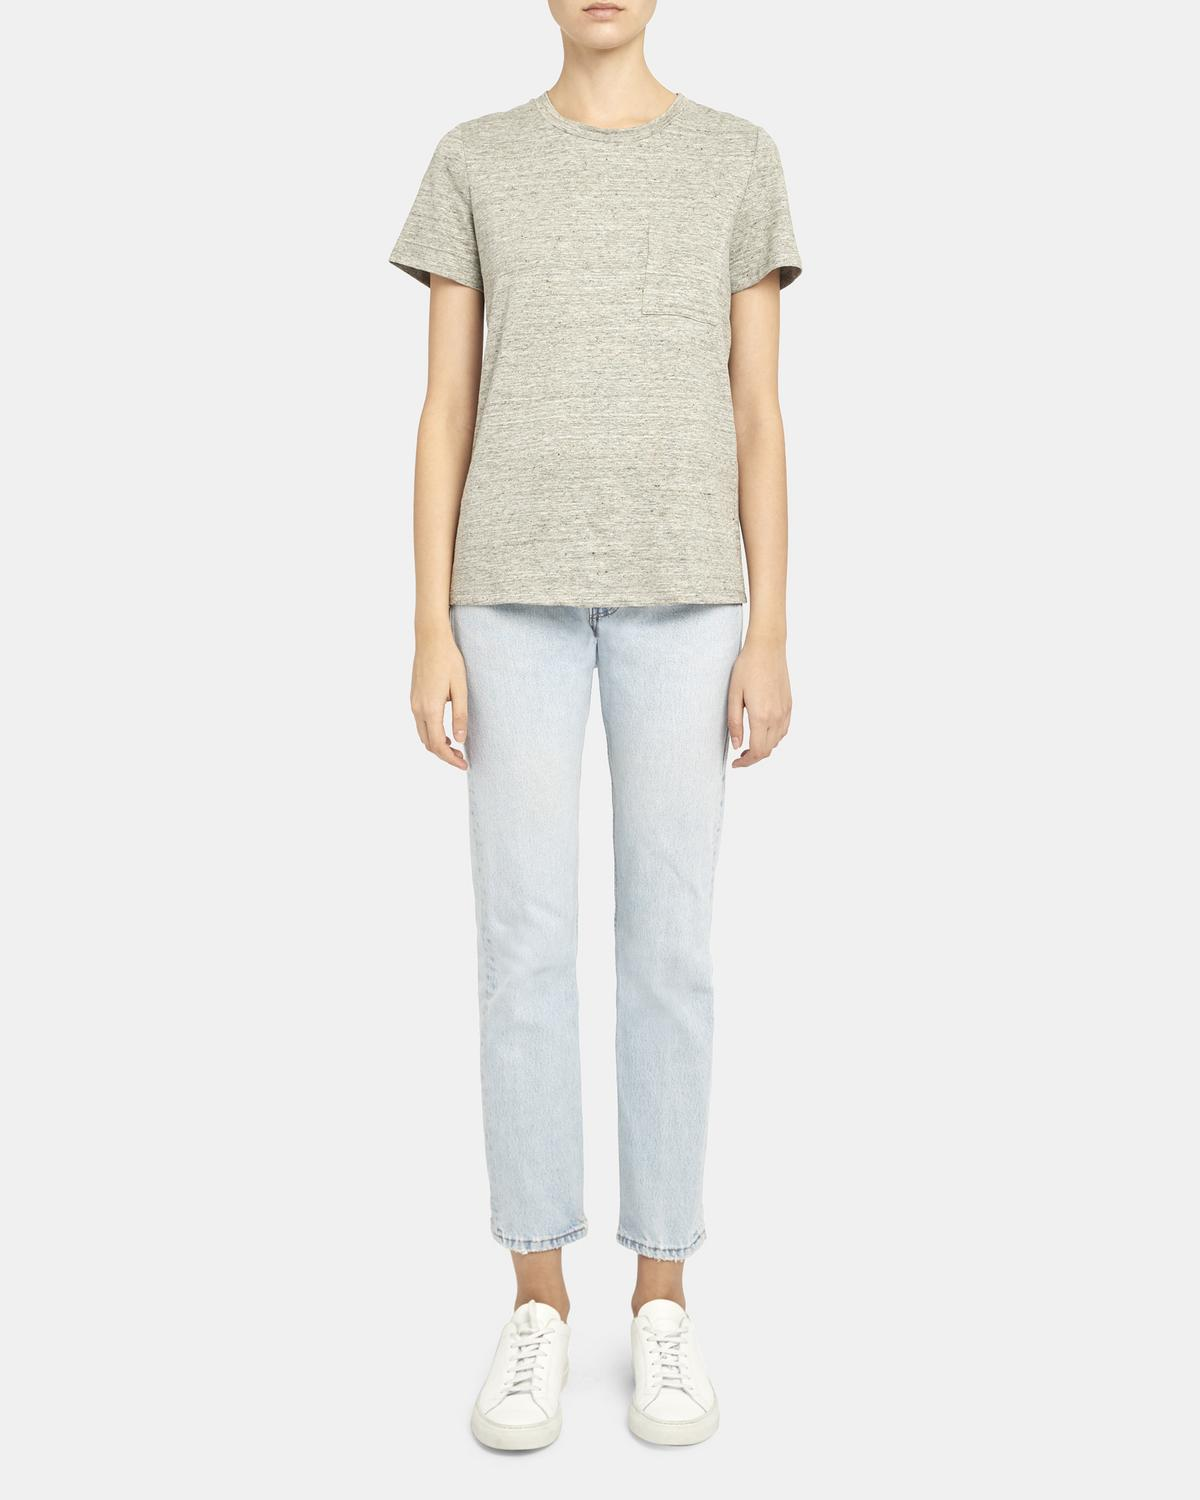 Easy Pocket Tee in Flex Linen 0 - click to view larger image